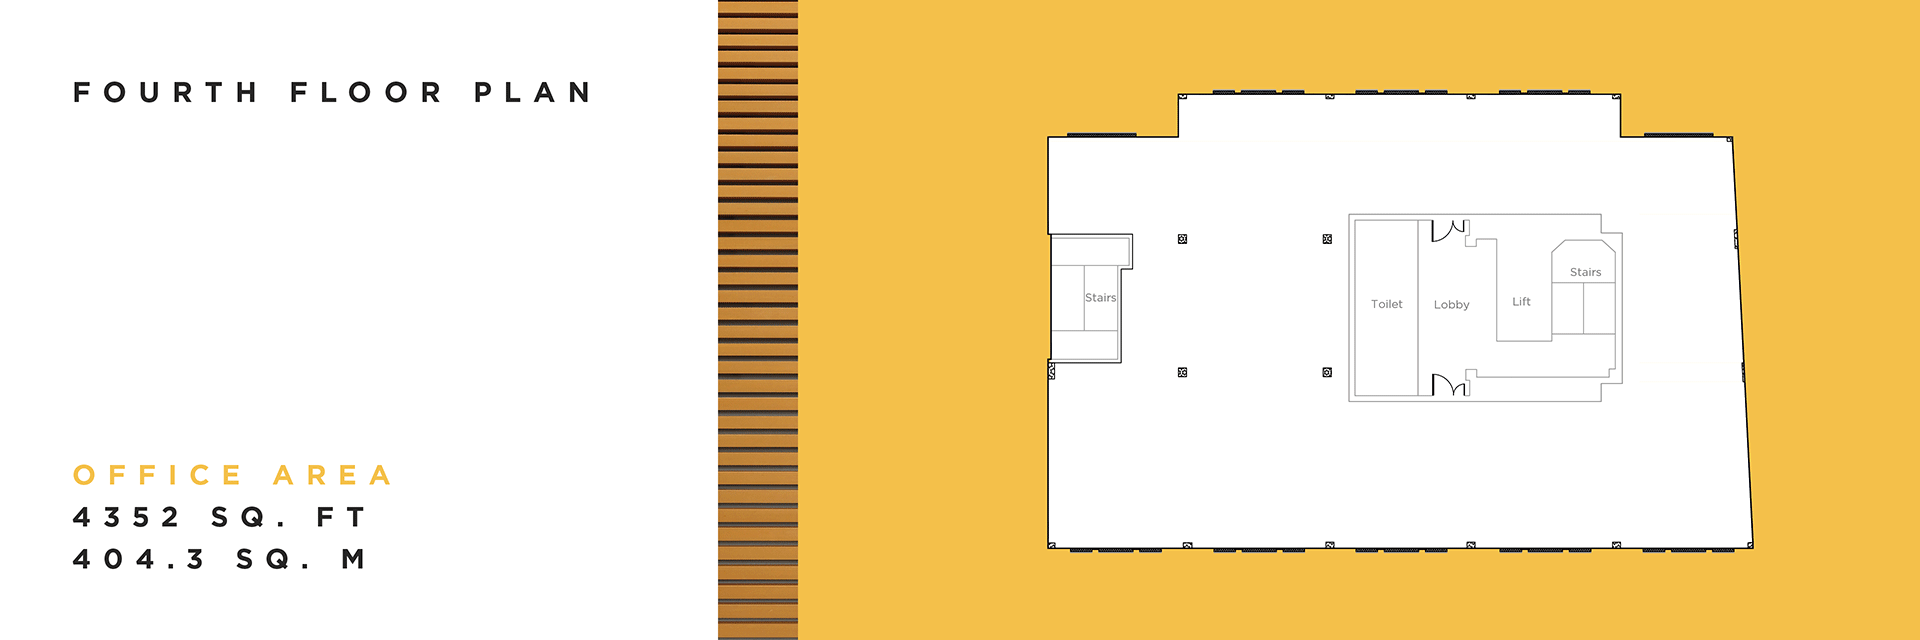 Fourht floor plan